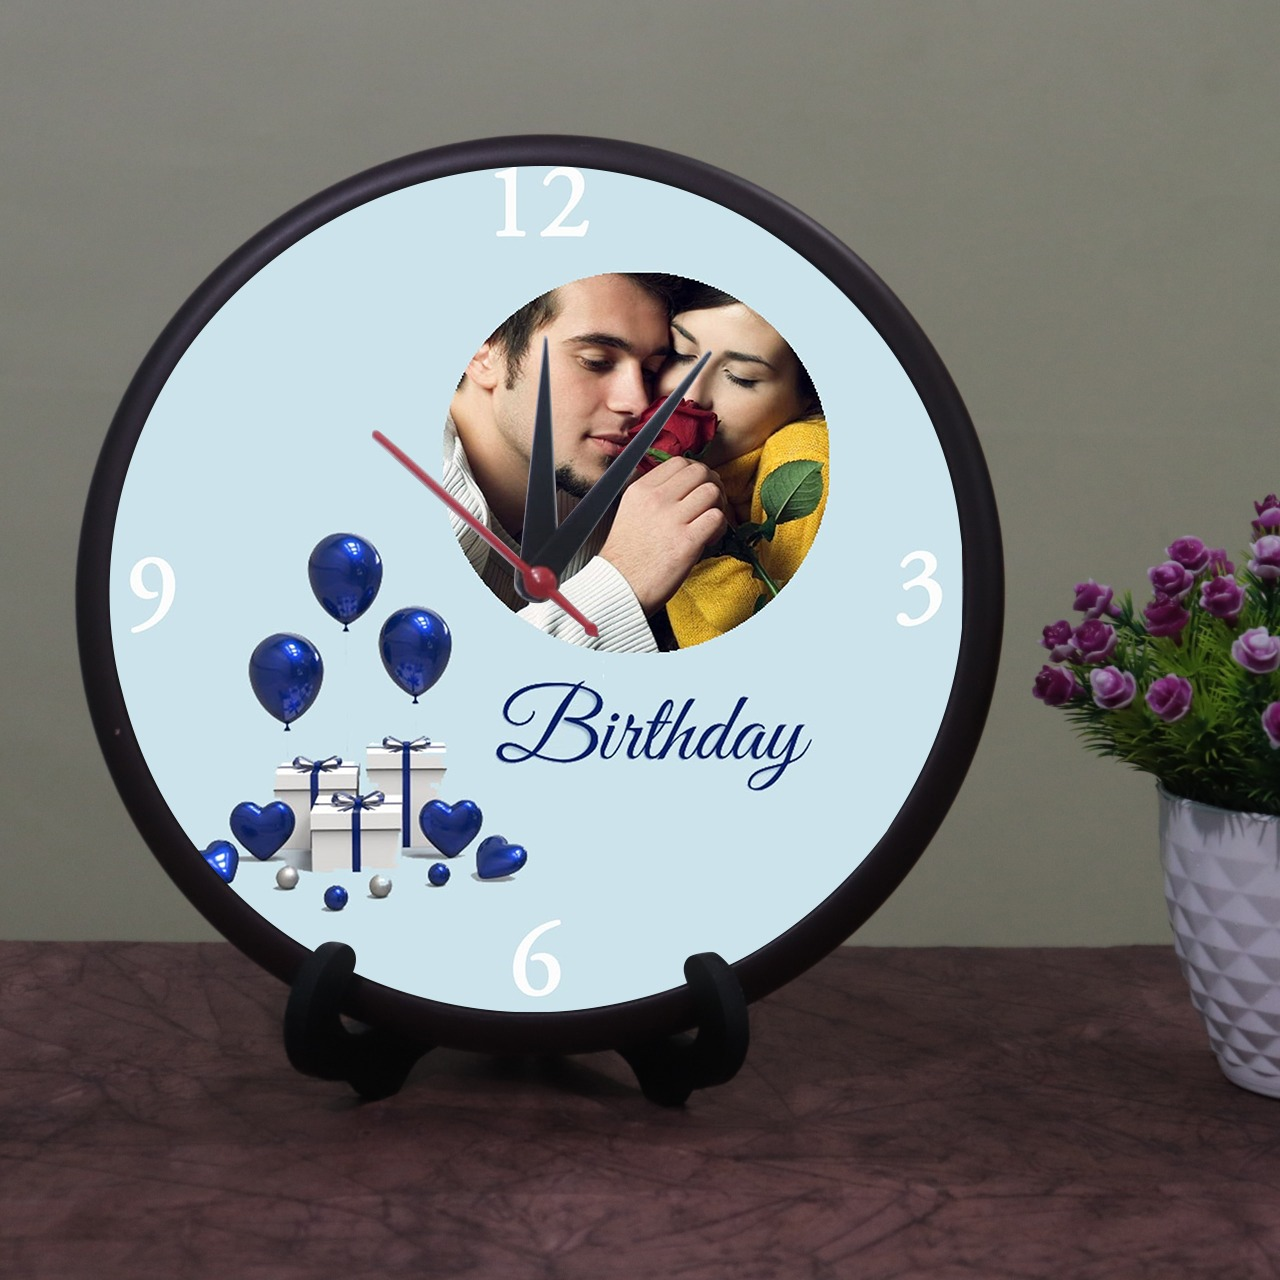 Brithday Personalized Round Shaped Clock